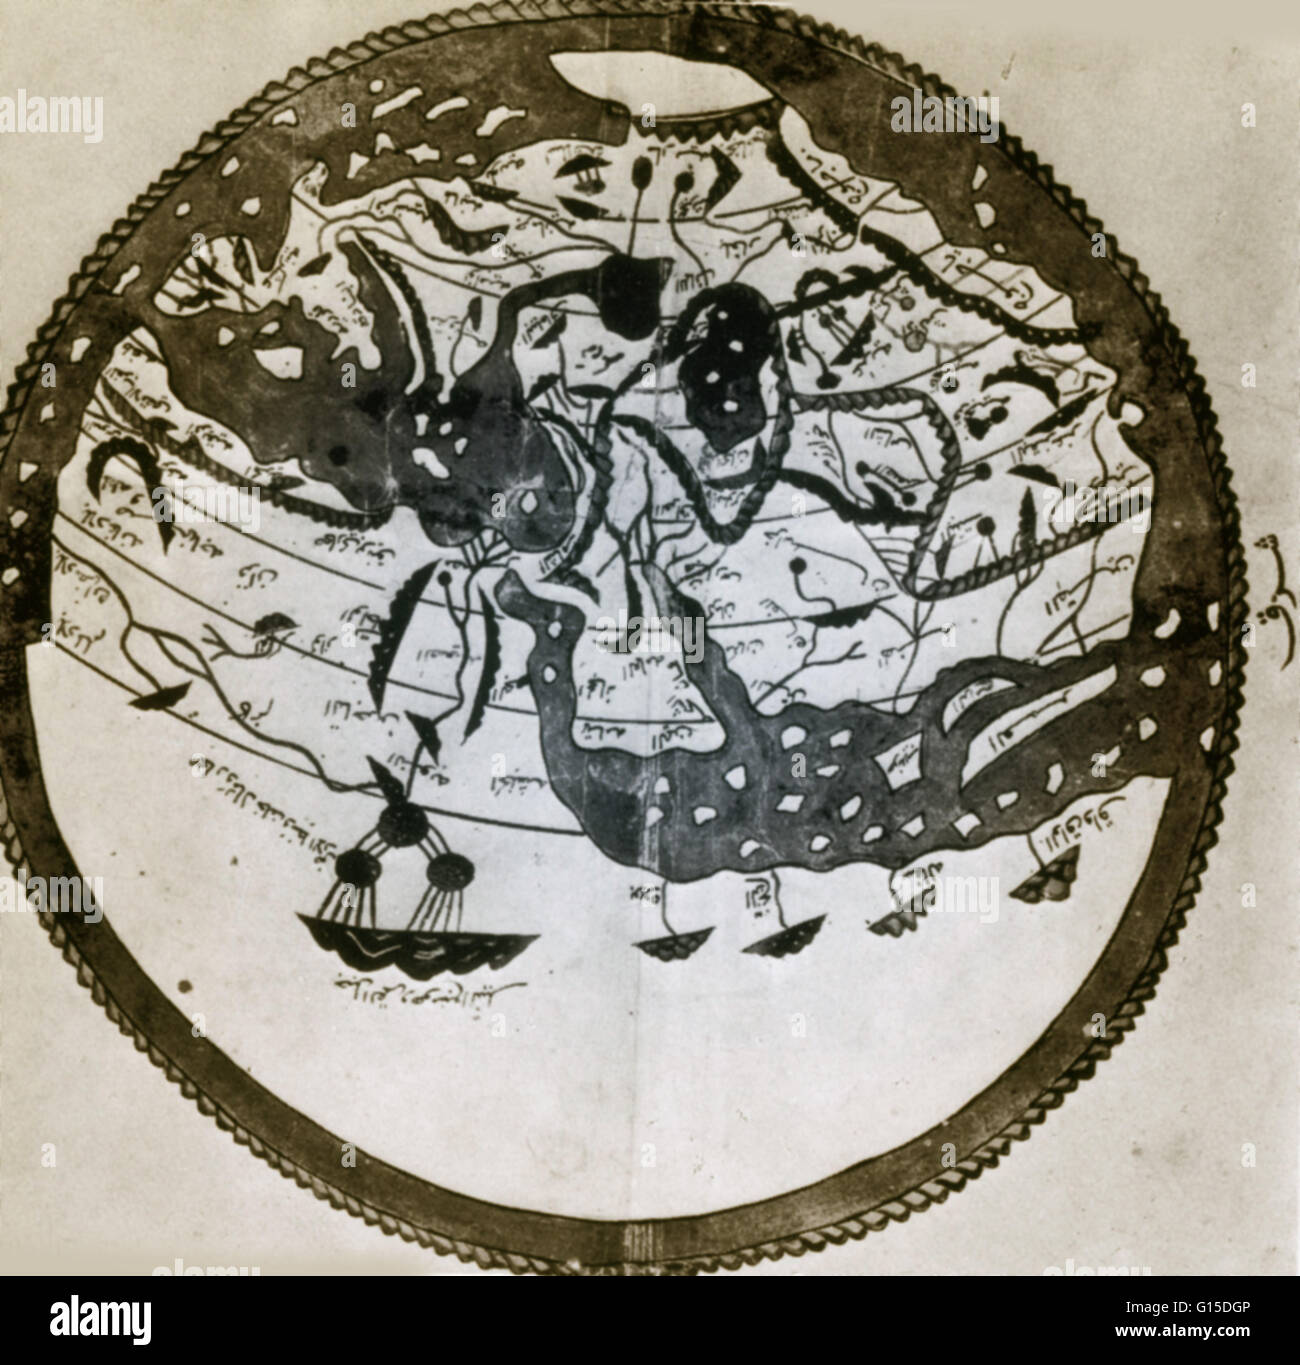 Arab geographers understood the outlines of Asia, Europe and North Africa by VI/12th century; their knowledge was - Stock Image